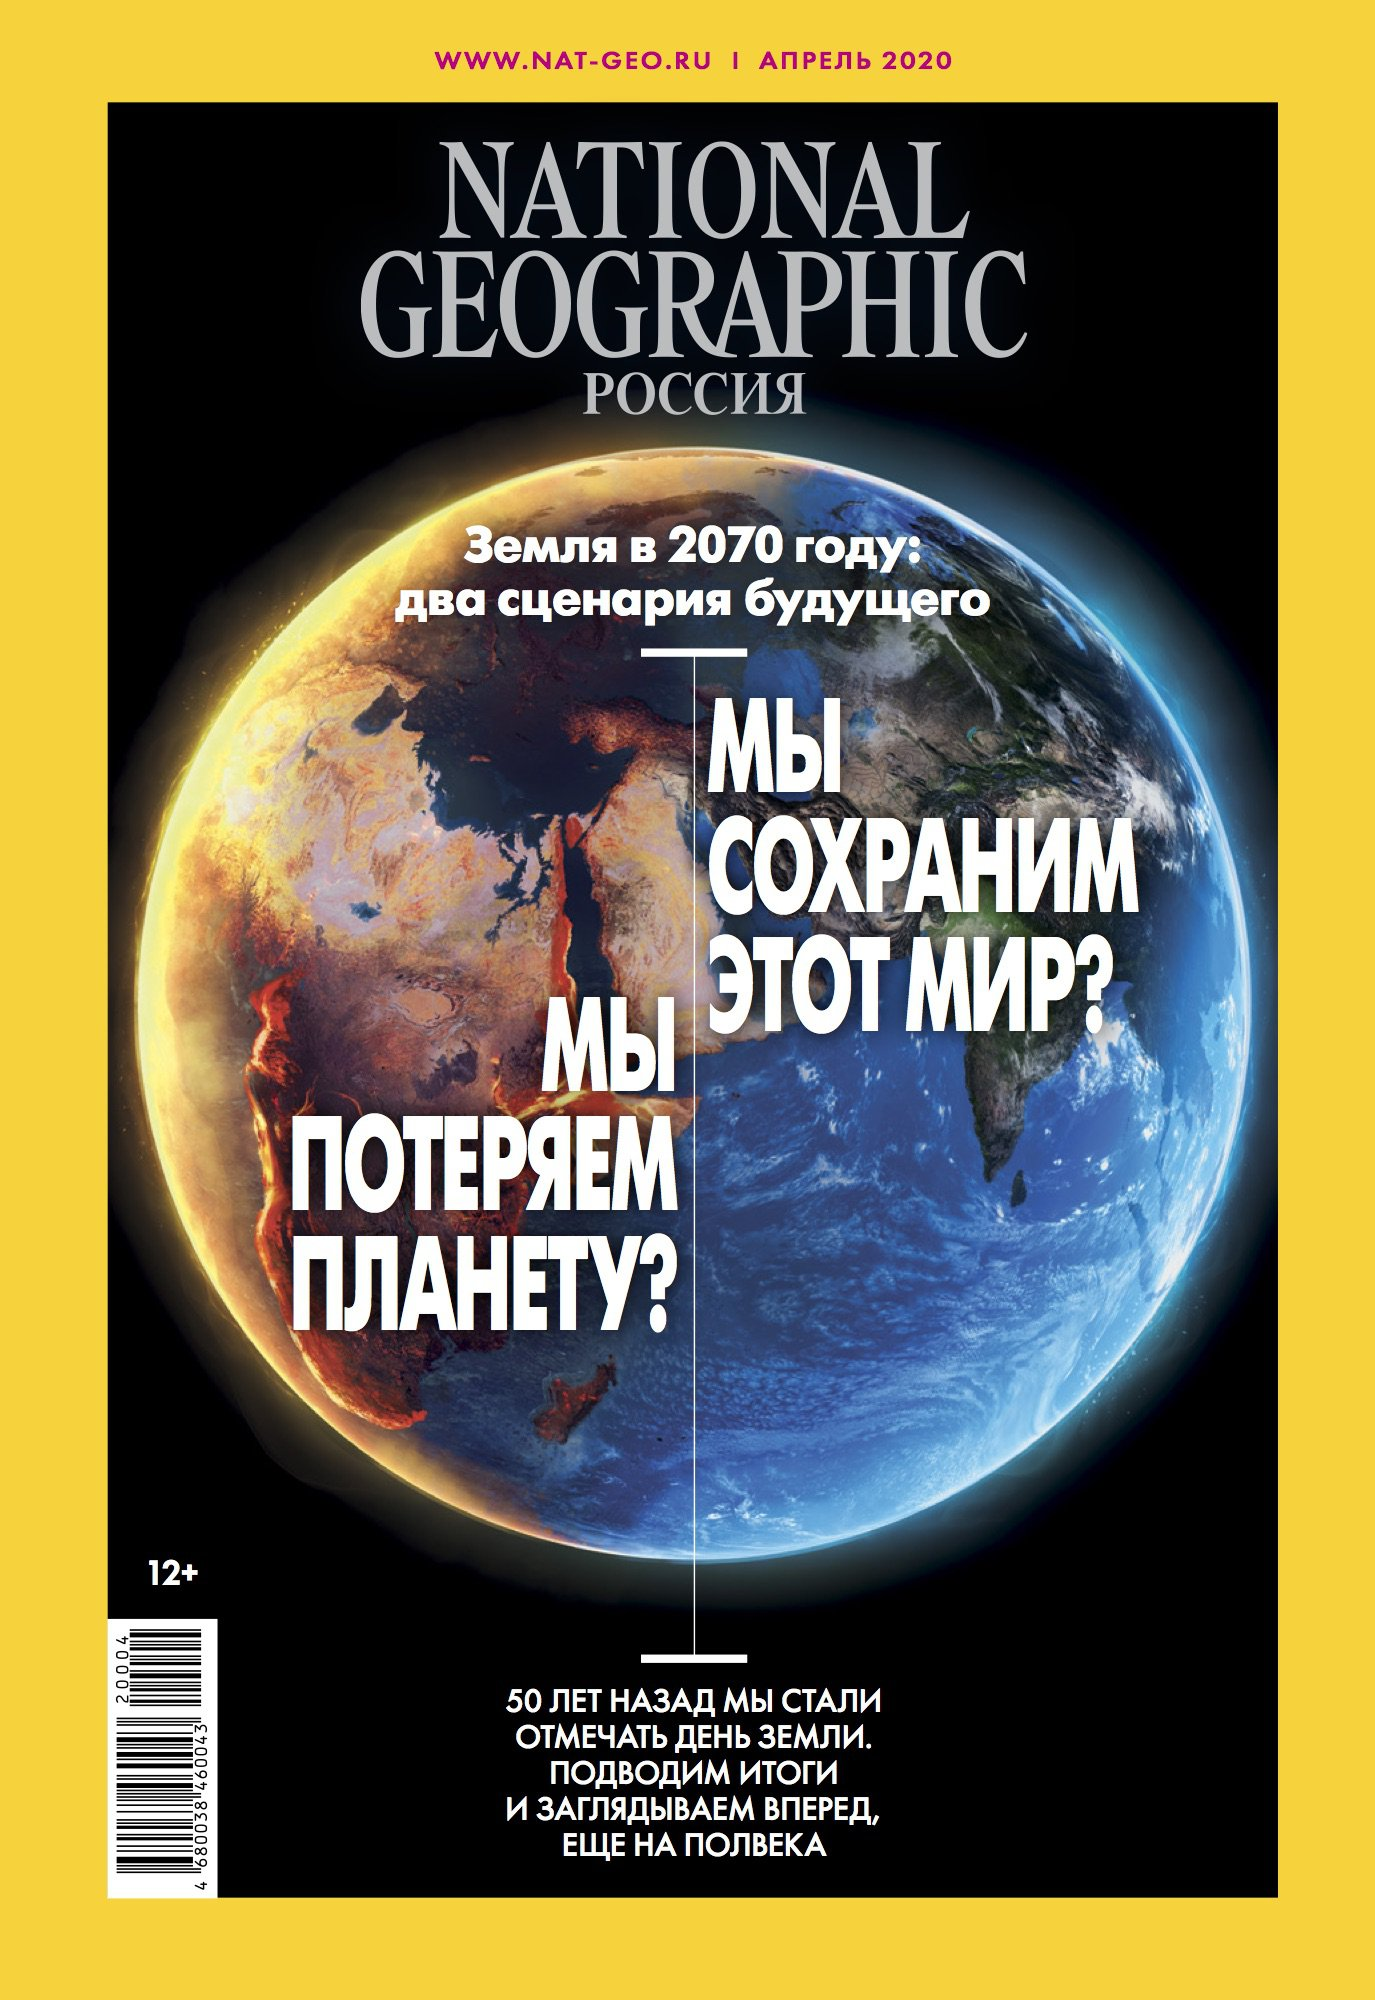 National Geographic №199, апрель 2020